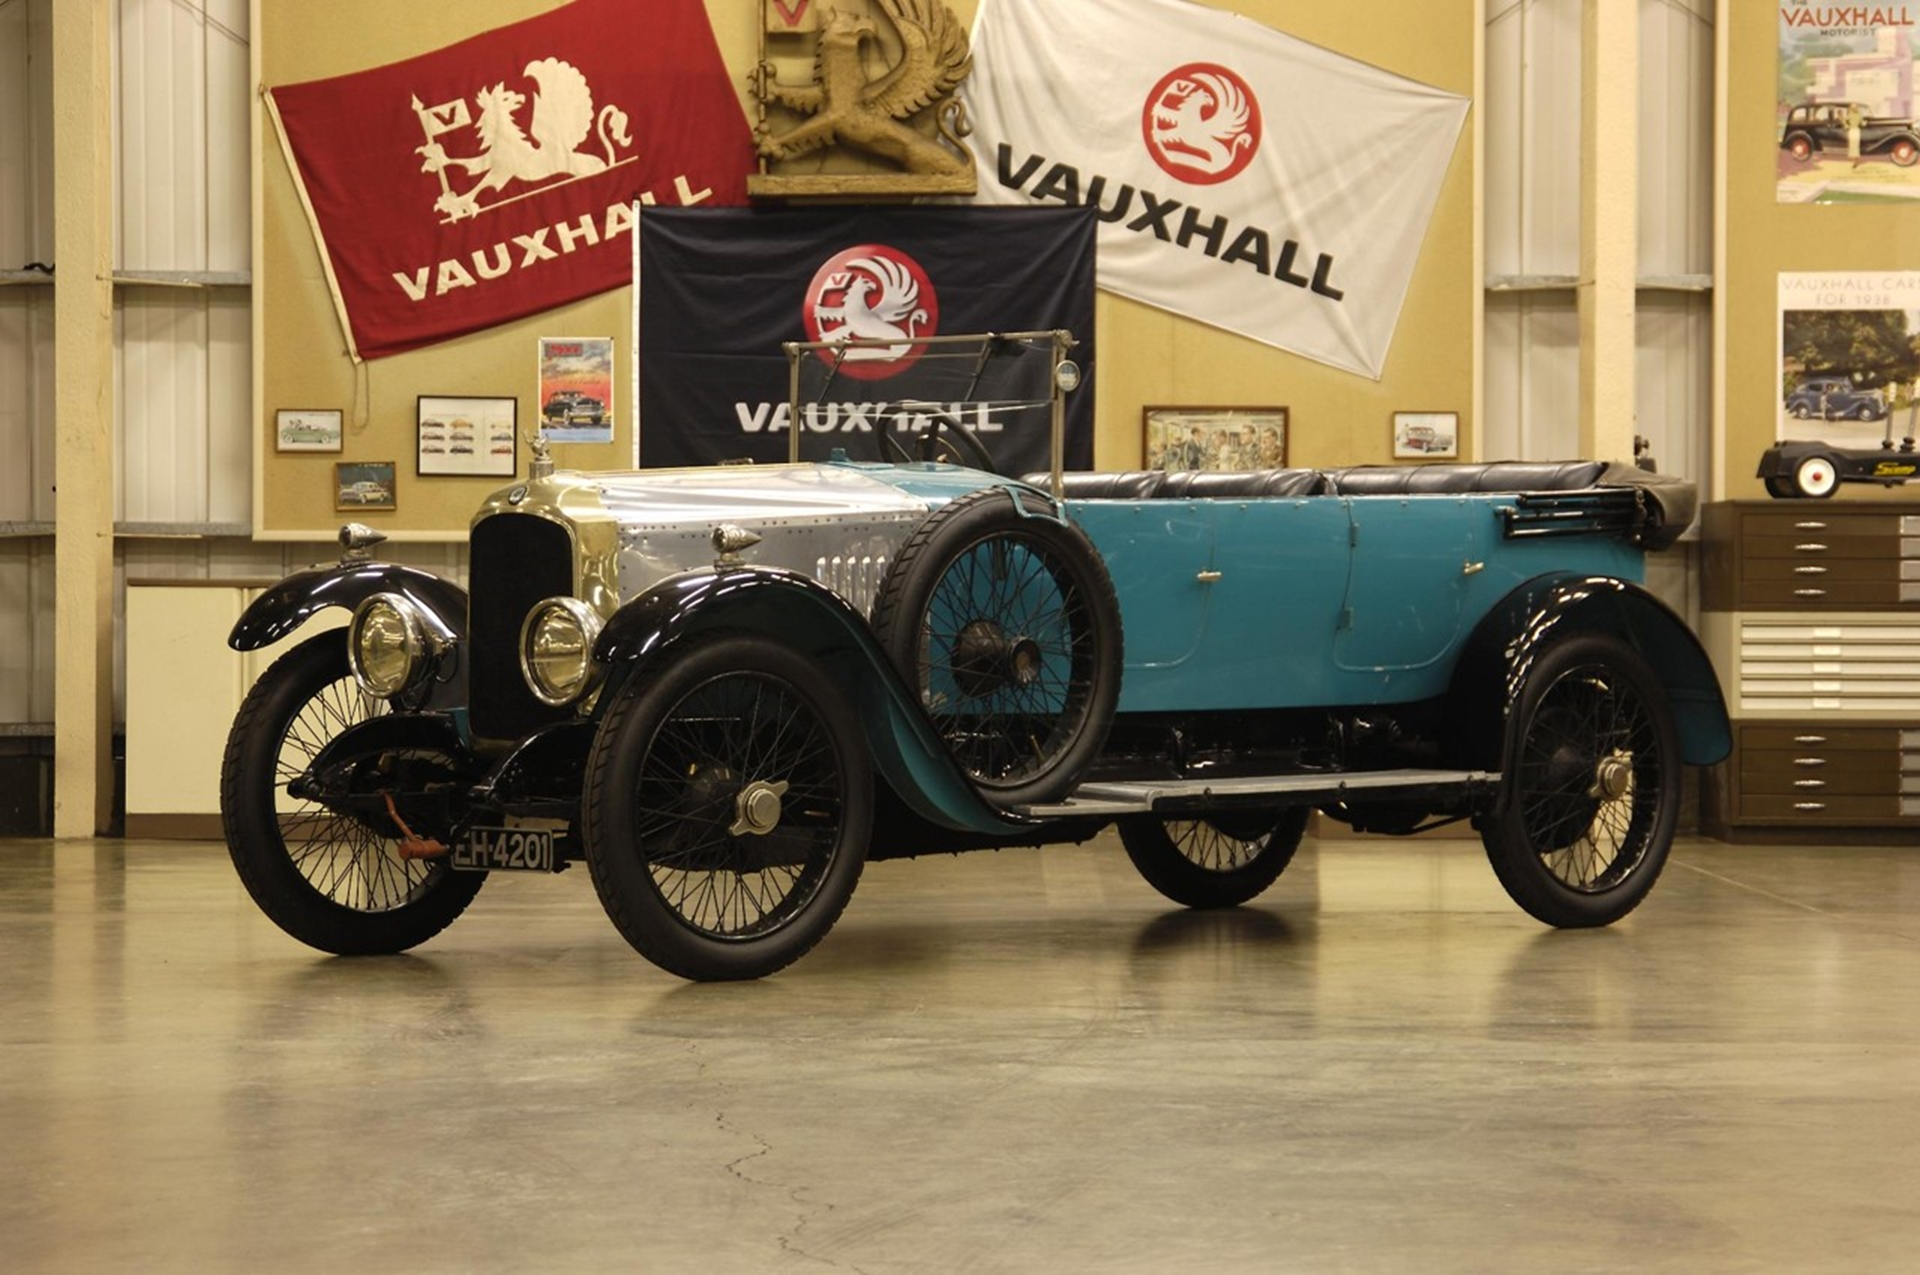 1923 Vauxhall OD-Type 23 60 Kington Tourer